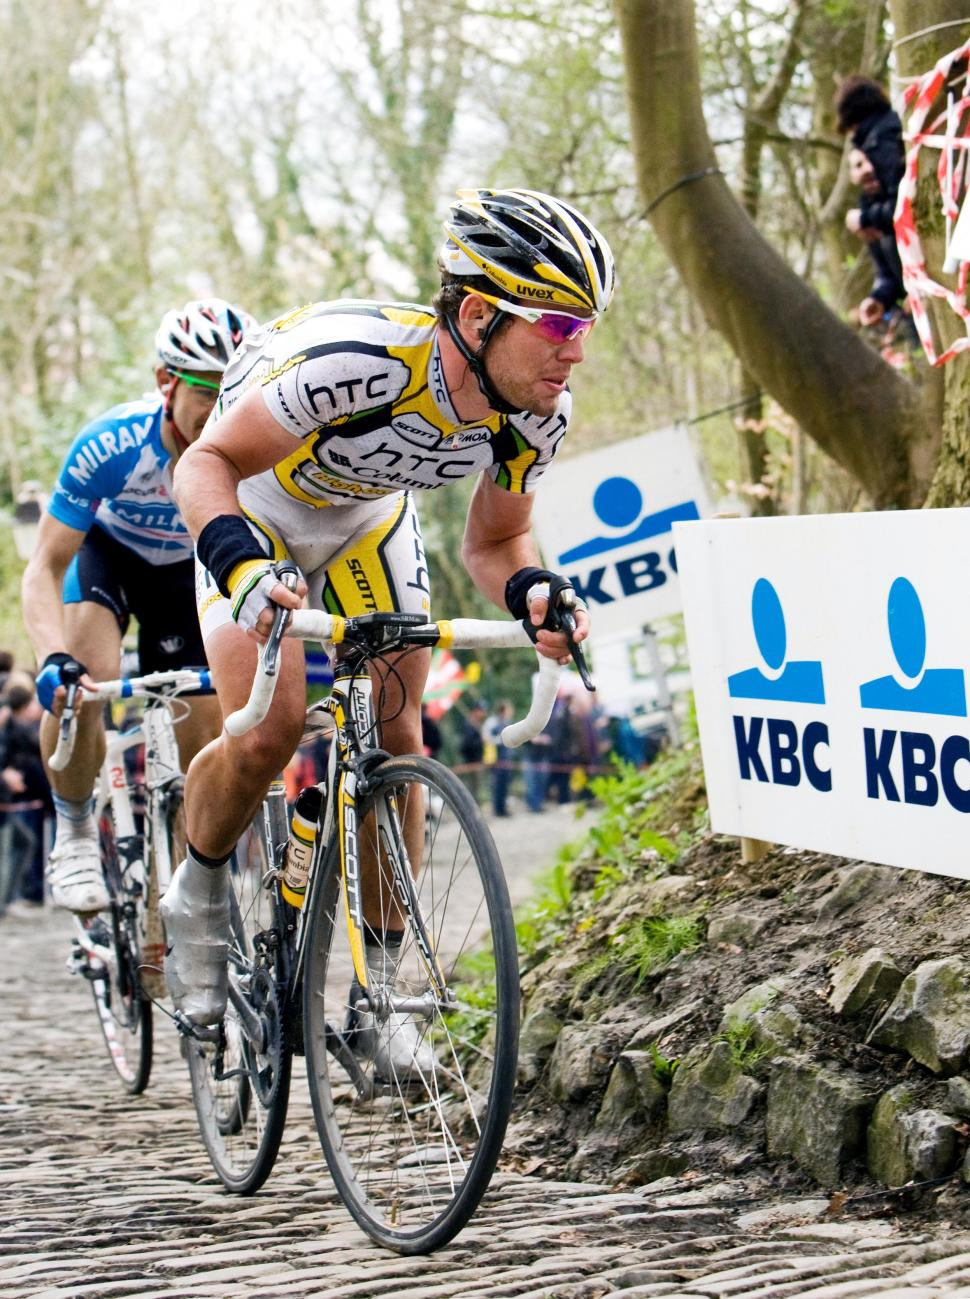 Cavendish on the Muur at Tour of Flanders 2010 / Photosport International